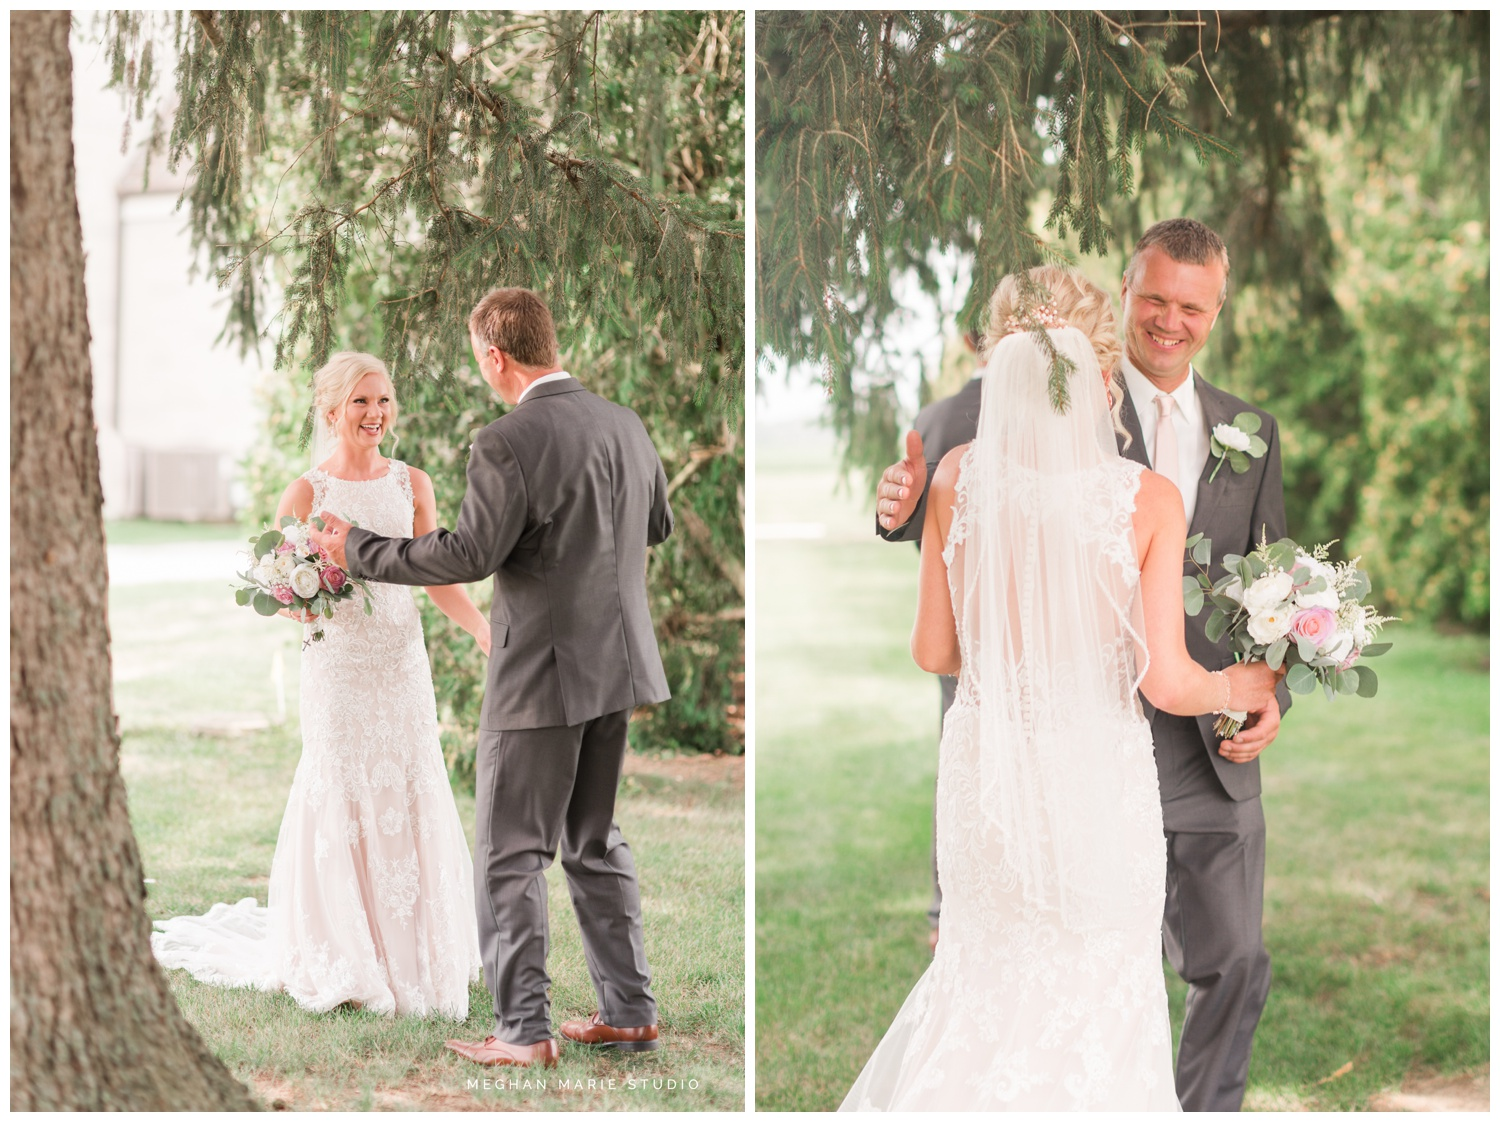 meghan marie studio wedding photographer ohio troy dayton columbus small town rustic rural farm cows vintage mauves dusty rose pinks whites ivorys grays f1 sound paper lanterns pearls_0591.jpg